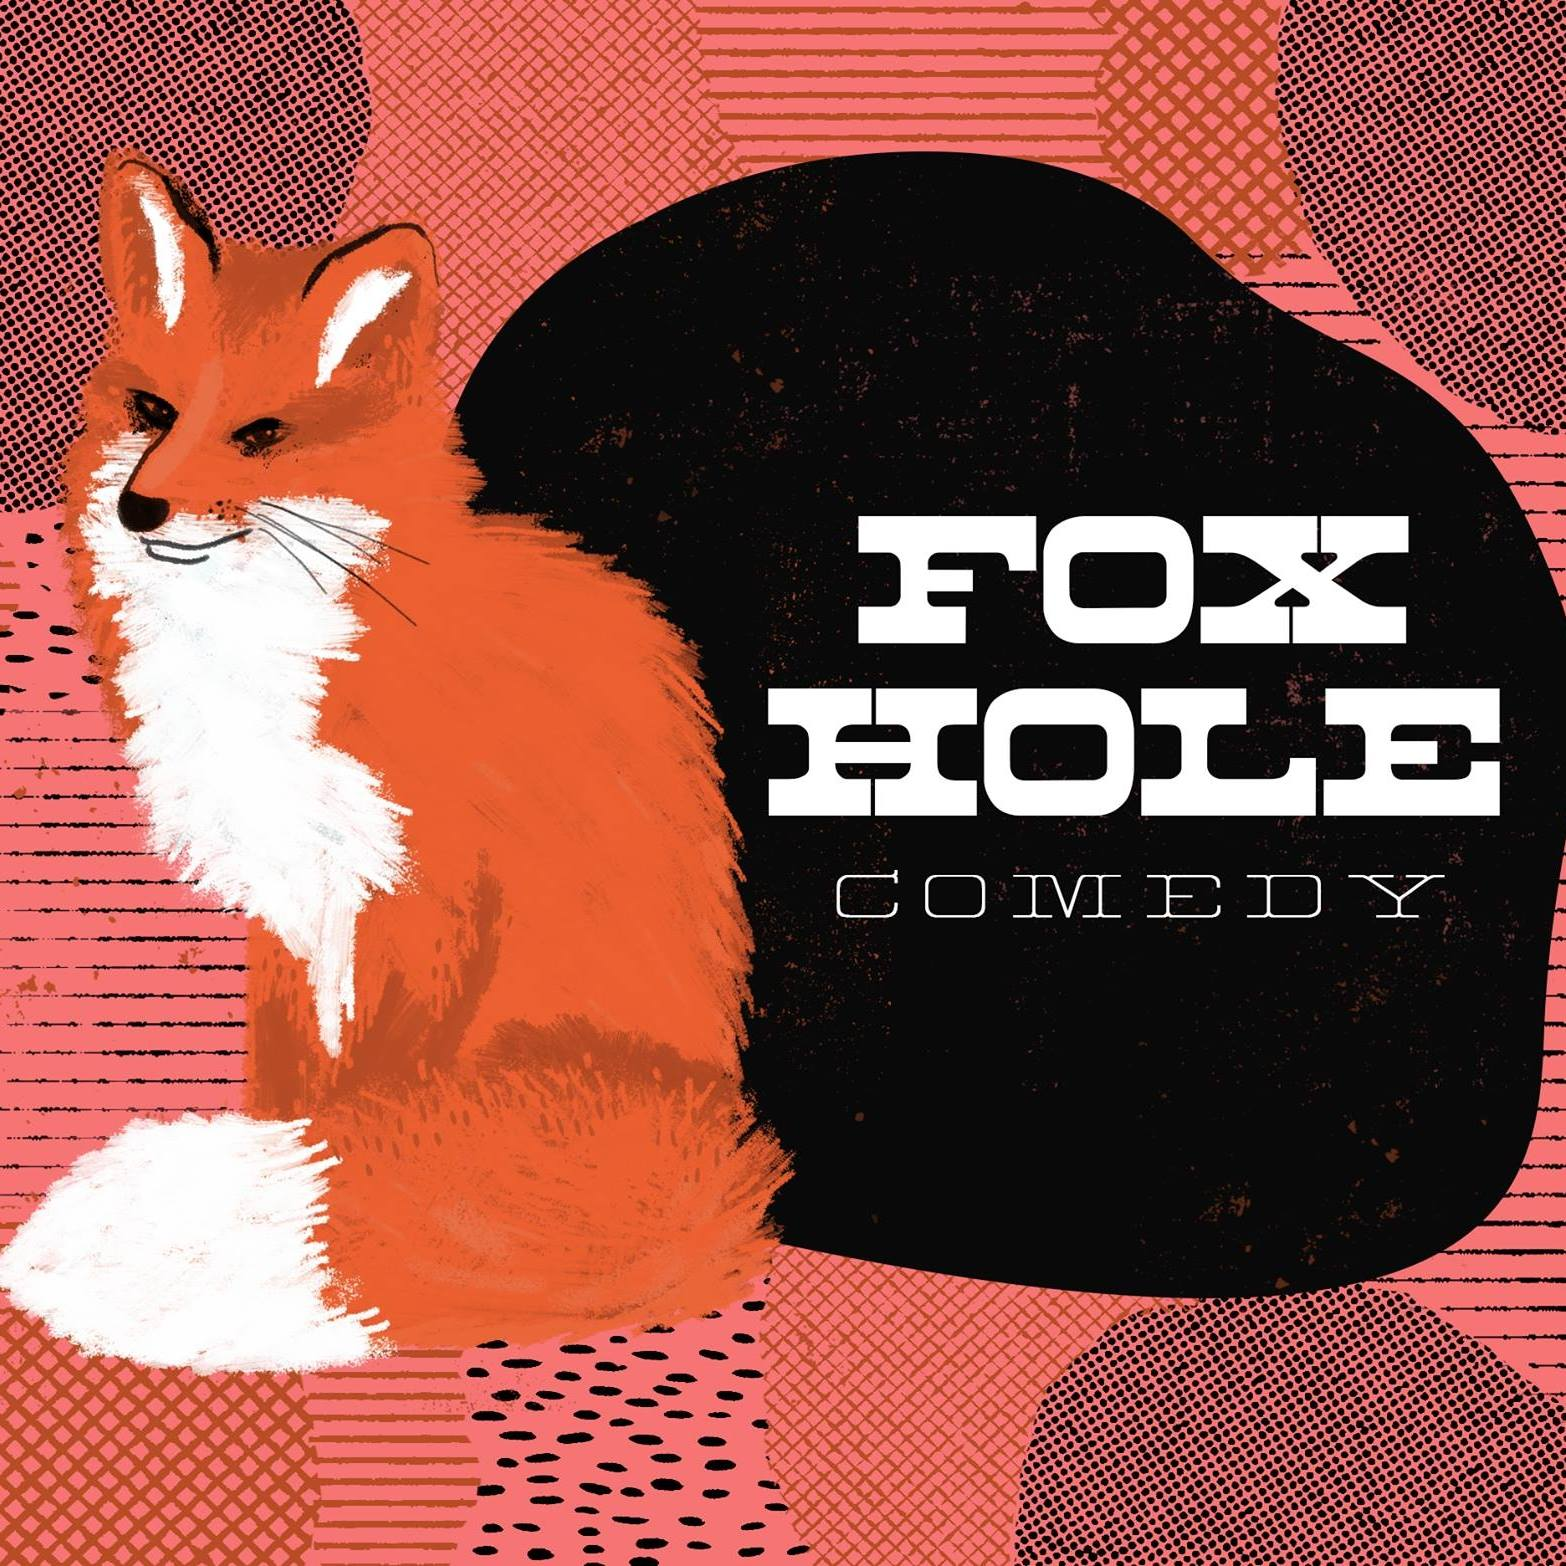 Wedneday Nights - Foxhole — Stand-up Comedy Every Wednesday check out Vancouver's best funny weirdos in a small, intimate venue right on Main Street. This is Vancouver's only weekly comedy room where women, folks of colour, and queers are the majority of the performers, every time.Doors 8pm // Show 9pm—10:30pmin The Projection Room   $5